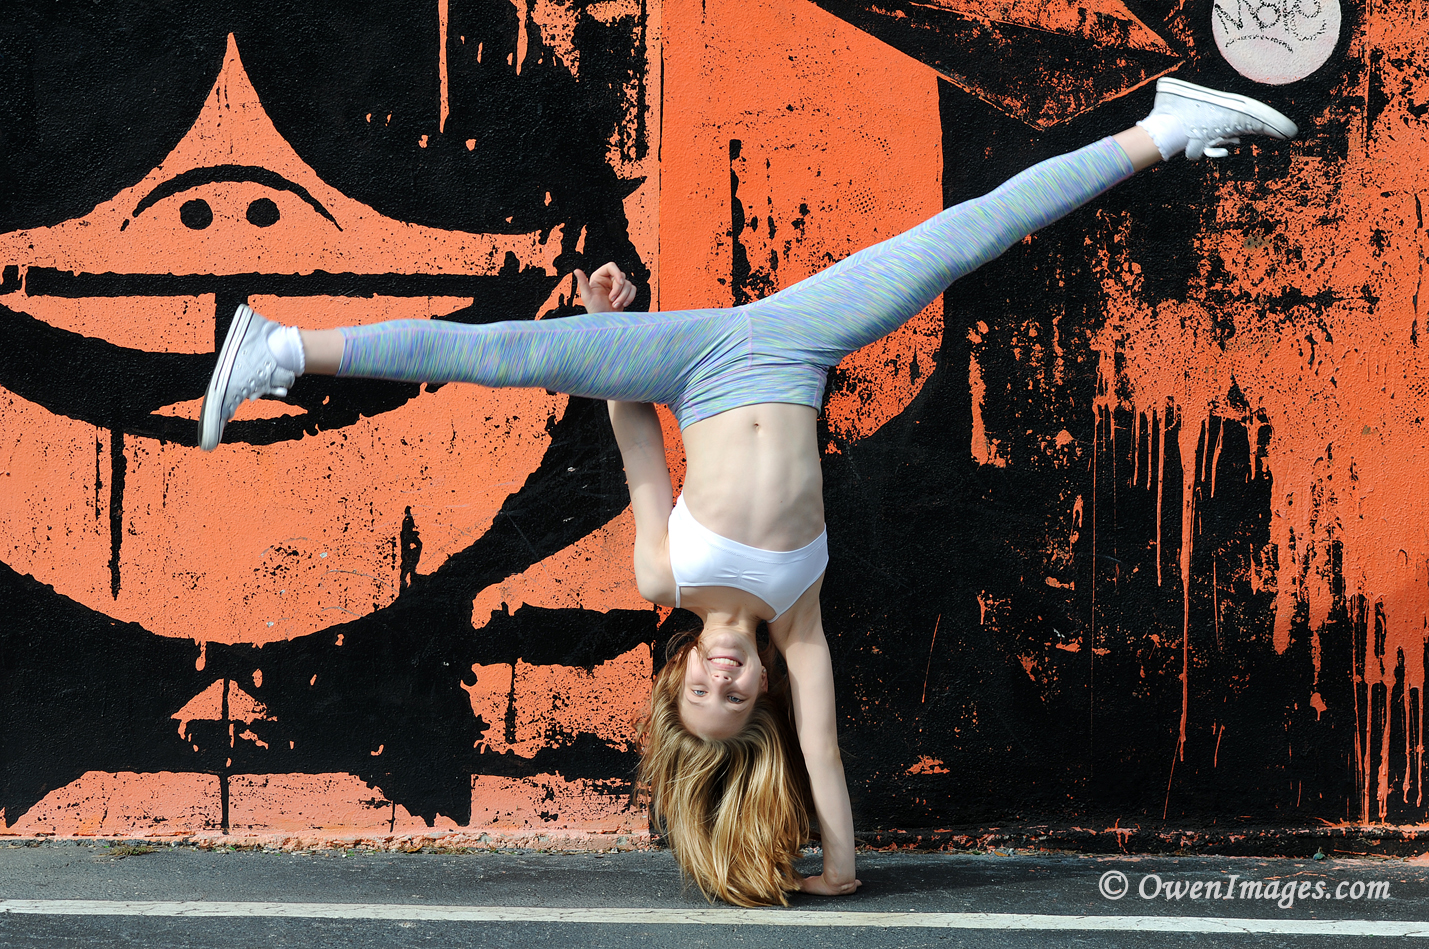 Gymnast doing a one arm cartwheel in front of a mural in downtown Saint Petersburg, Florida